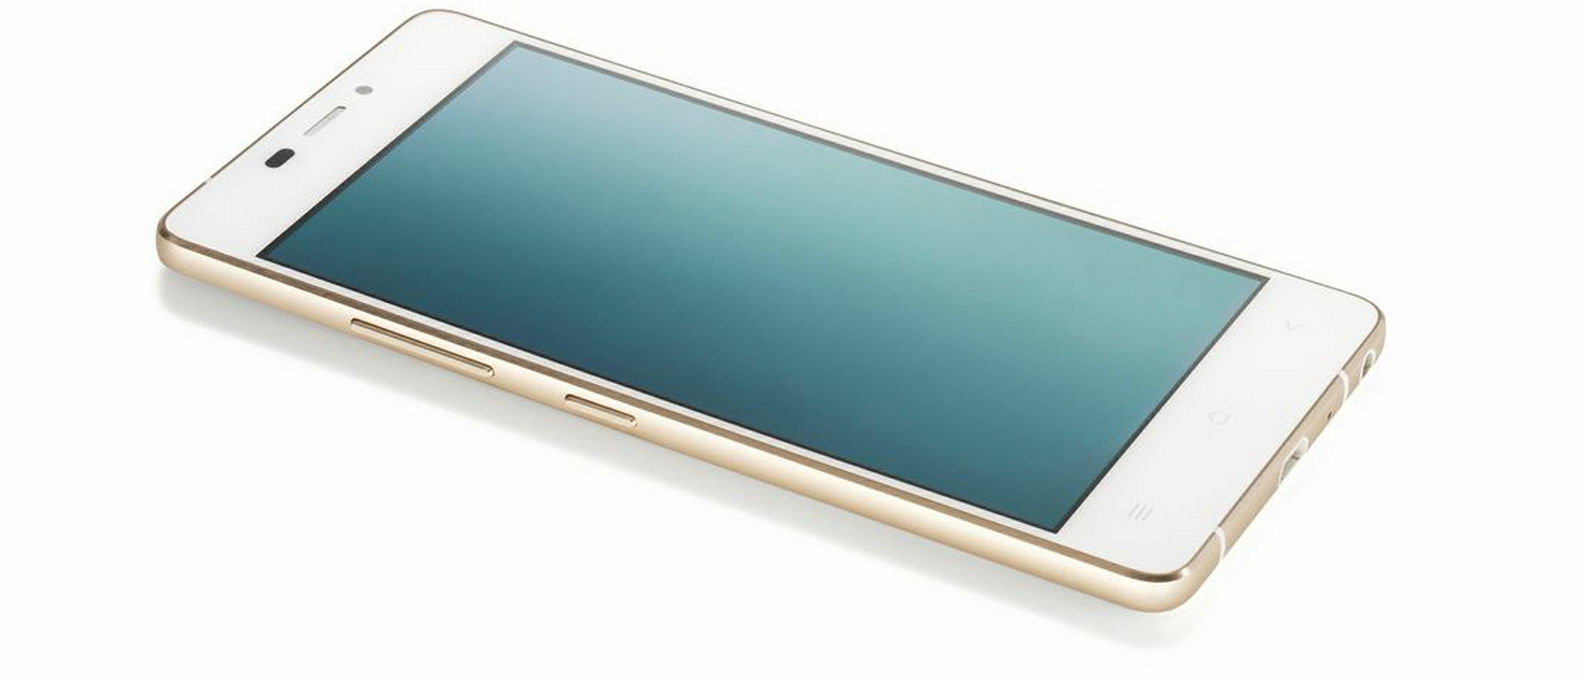 World's Thinnest Smartphone: Tornado 348 Launched by UK ...